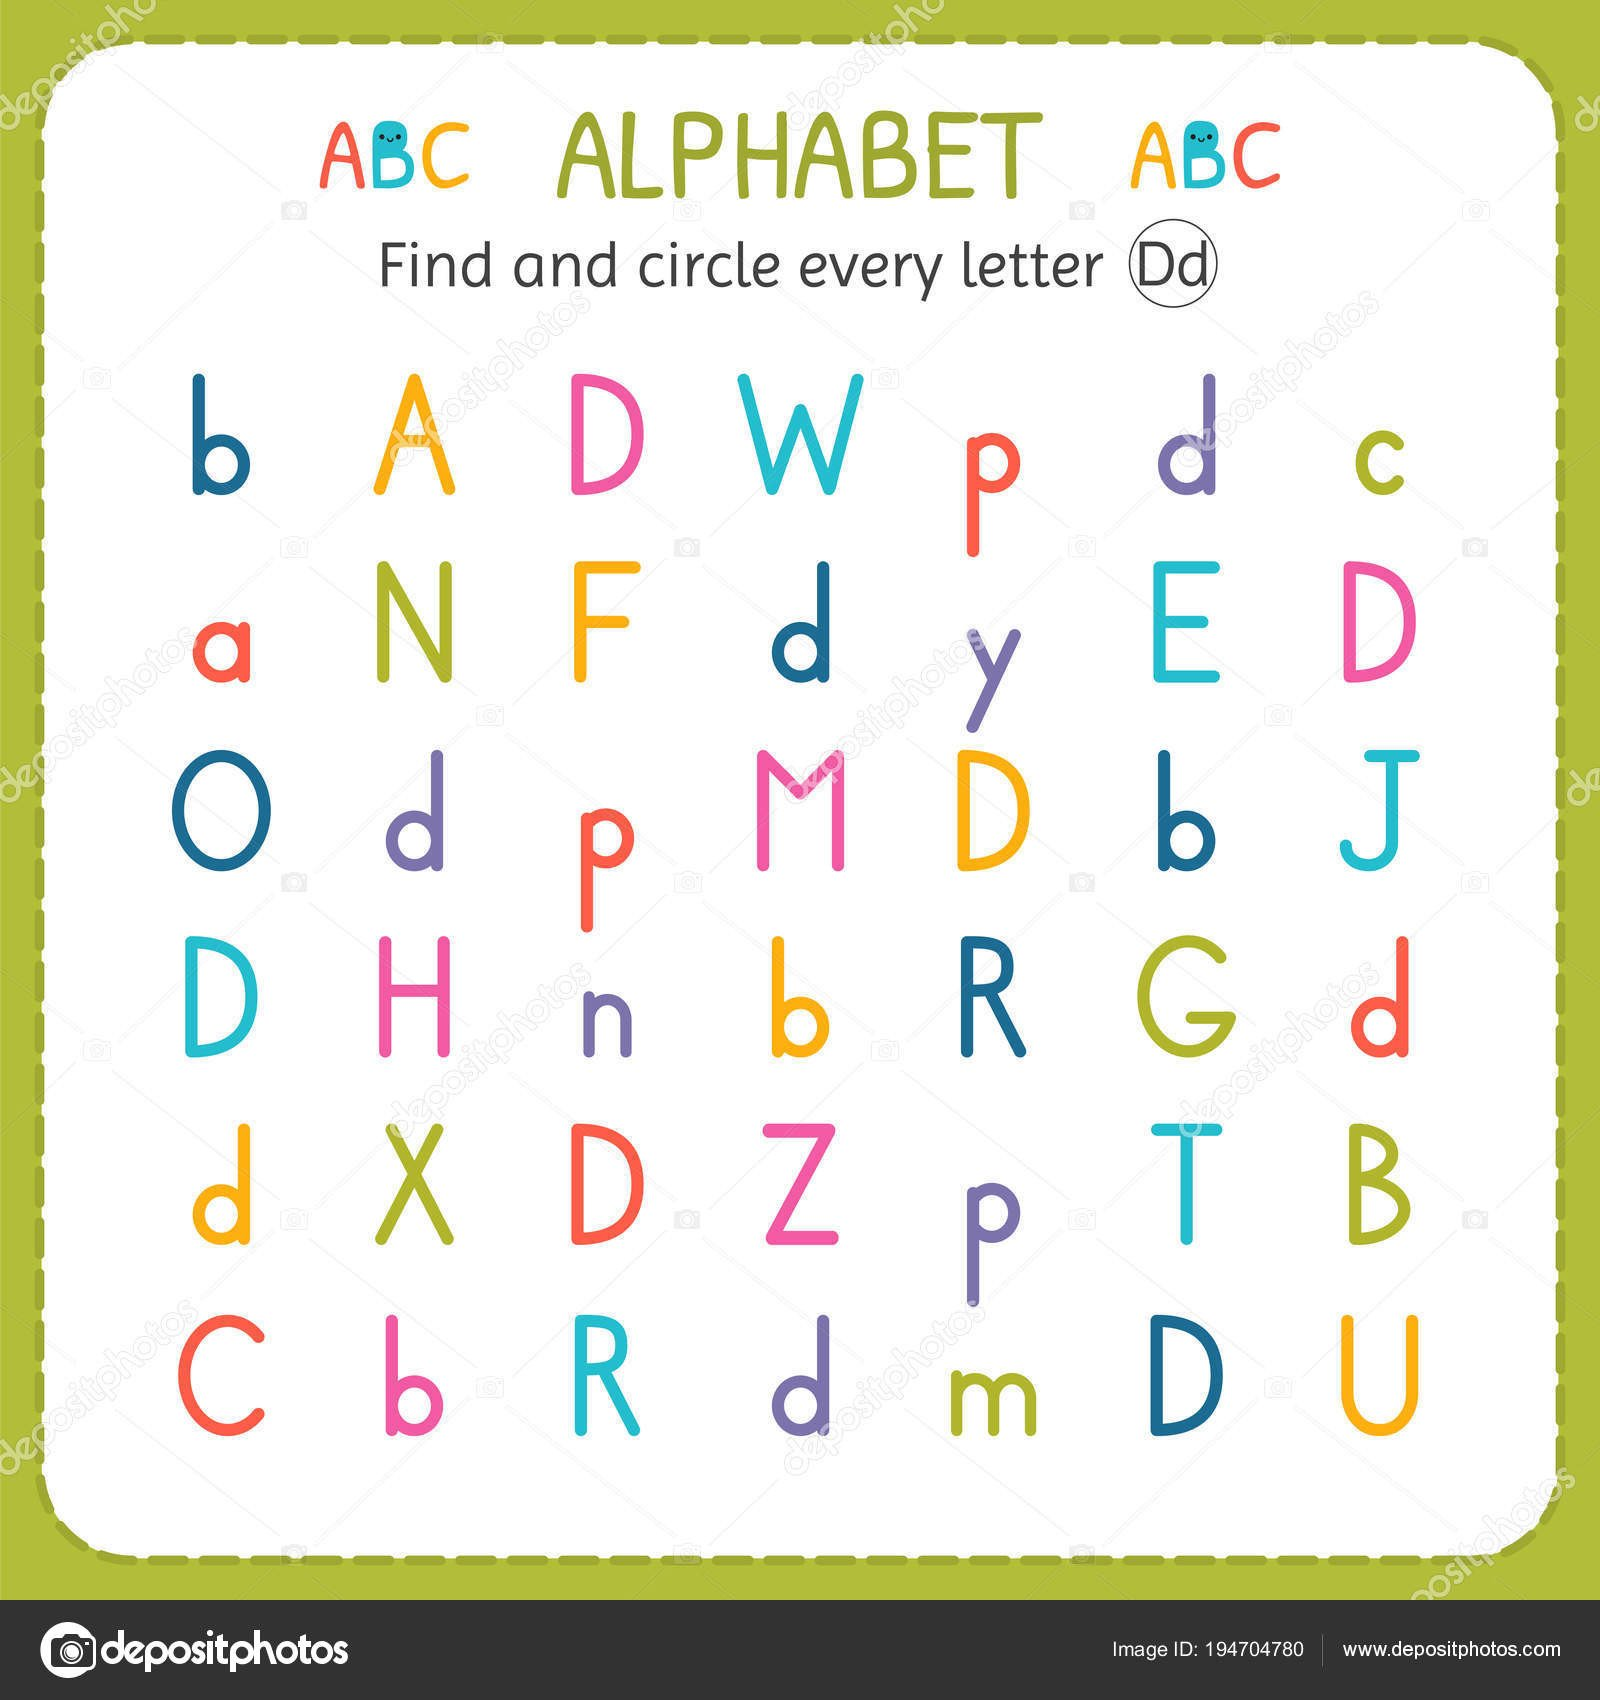 Letter D Worksheet Preschool Find and Circle Every Letter D Worksheet for Kindergarten and Preschool Exercises for Children